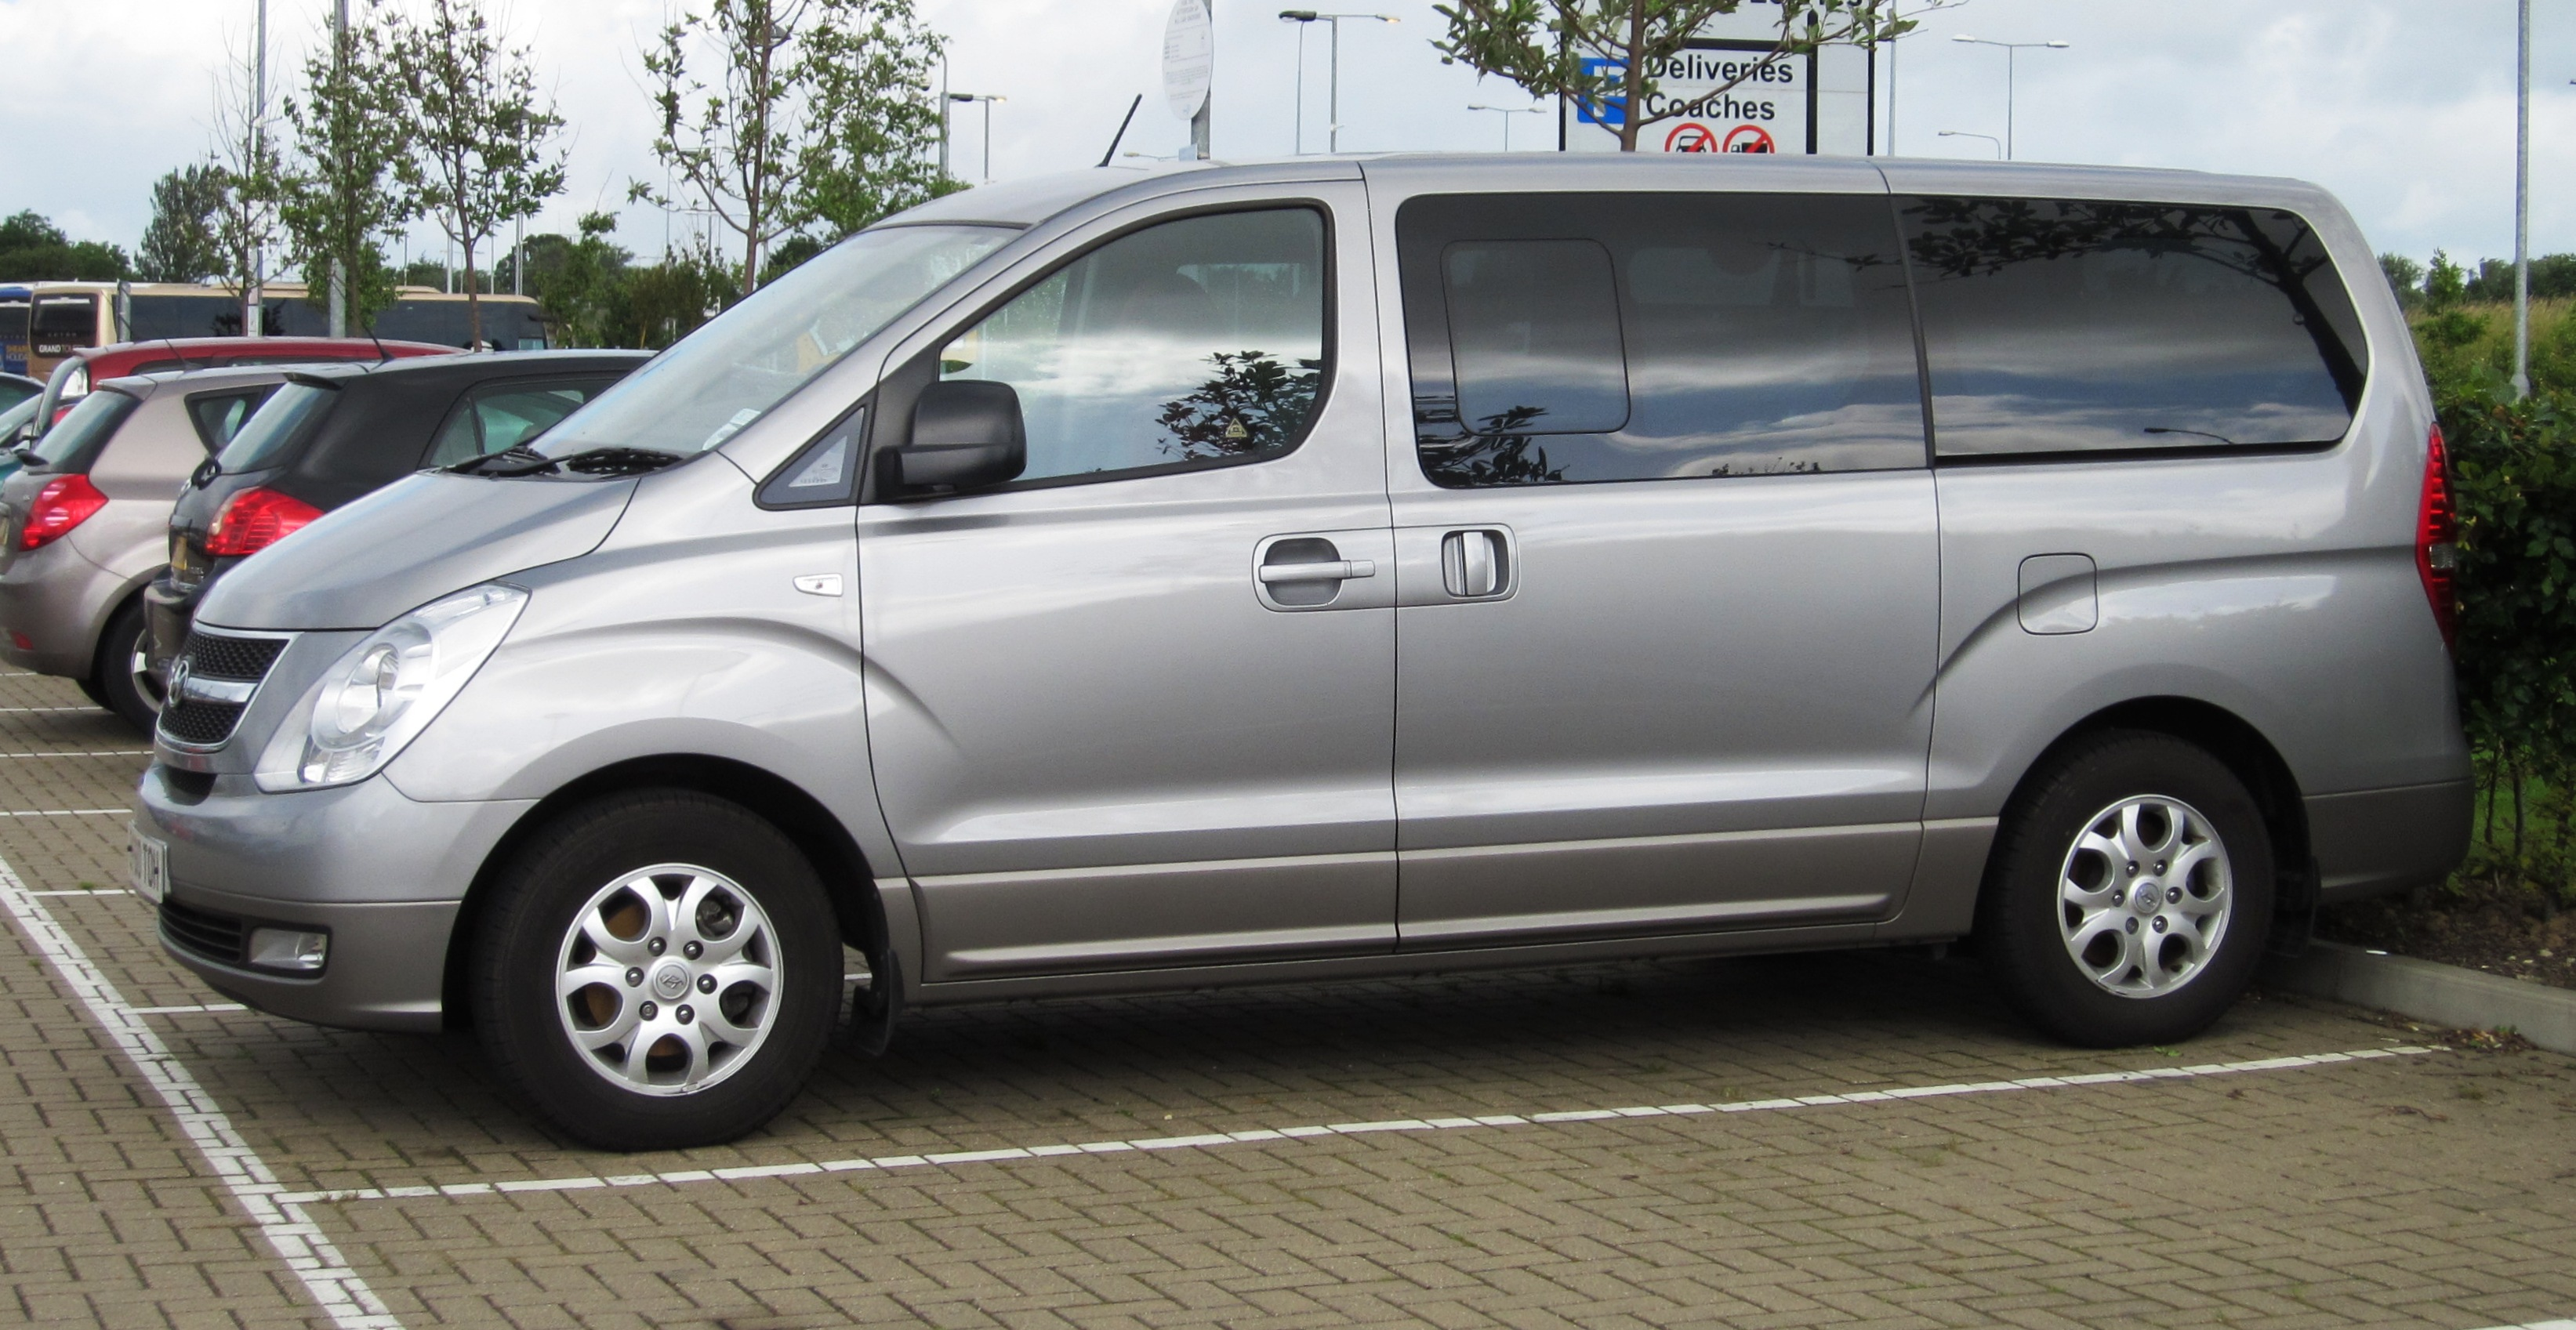 Used Toyota For Sale >> File:Hyundai Starex in Kent July 2012.JPG - Wikimedia Commons